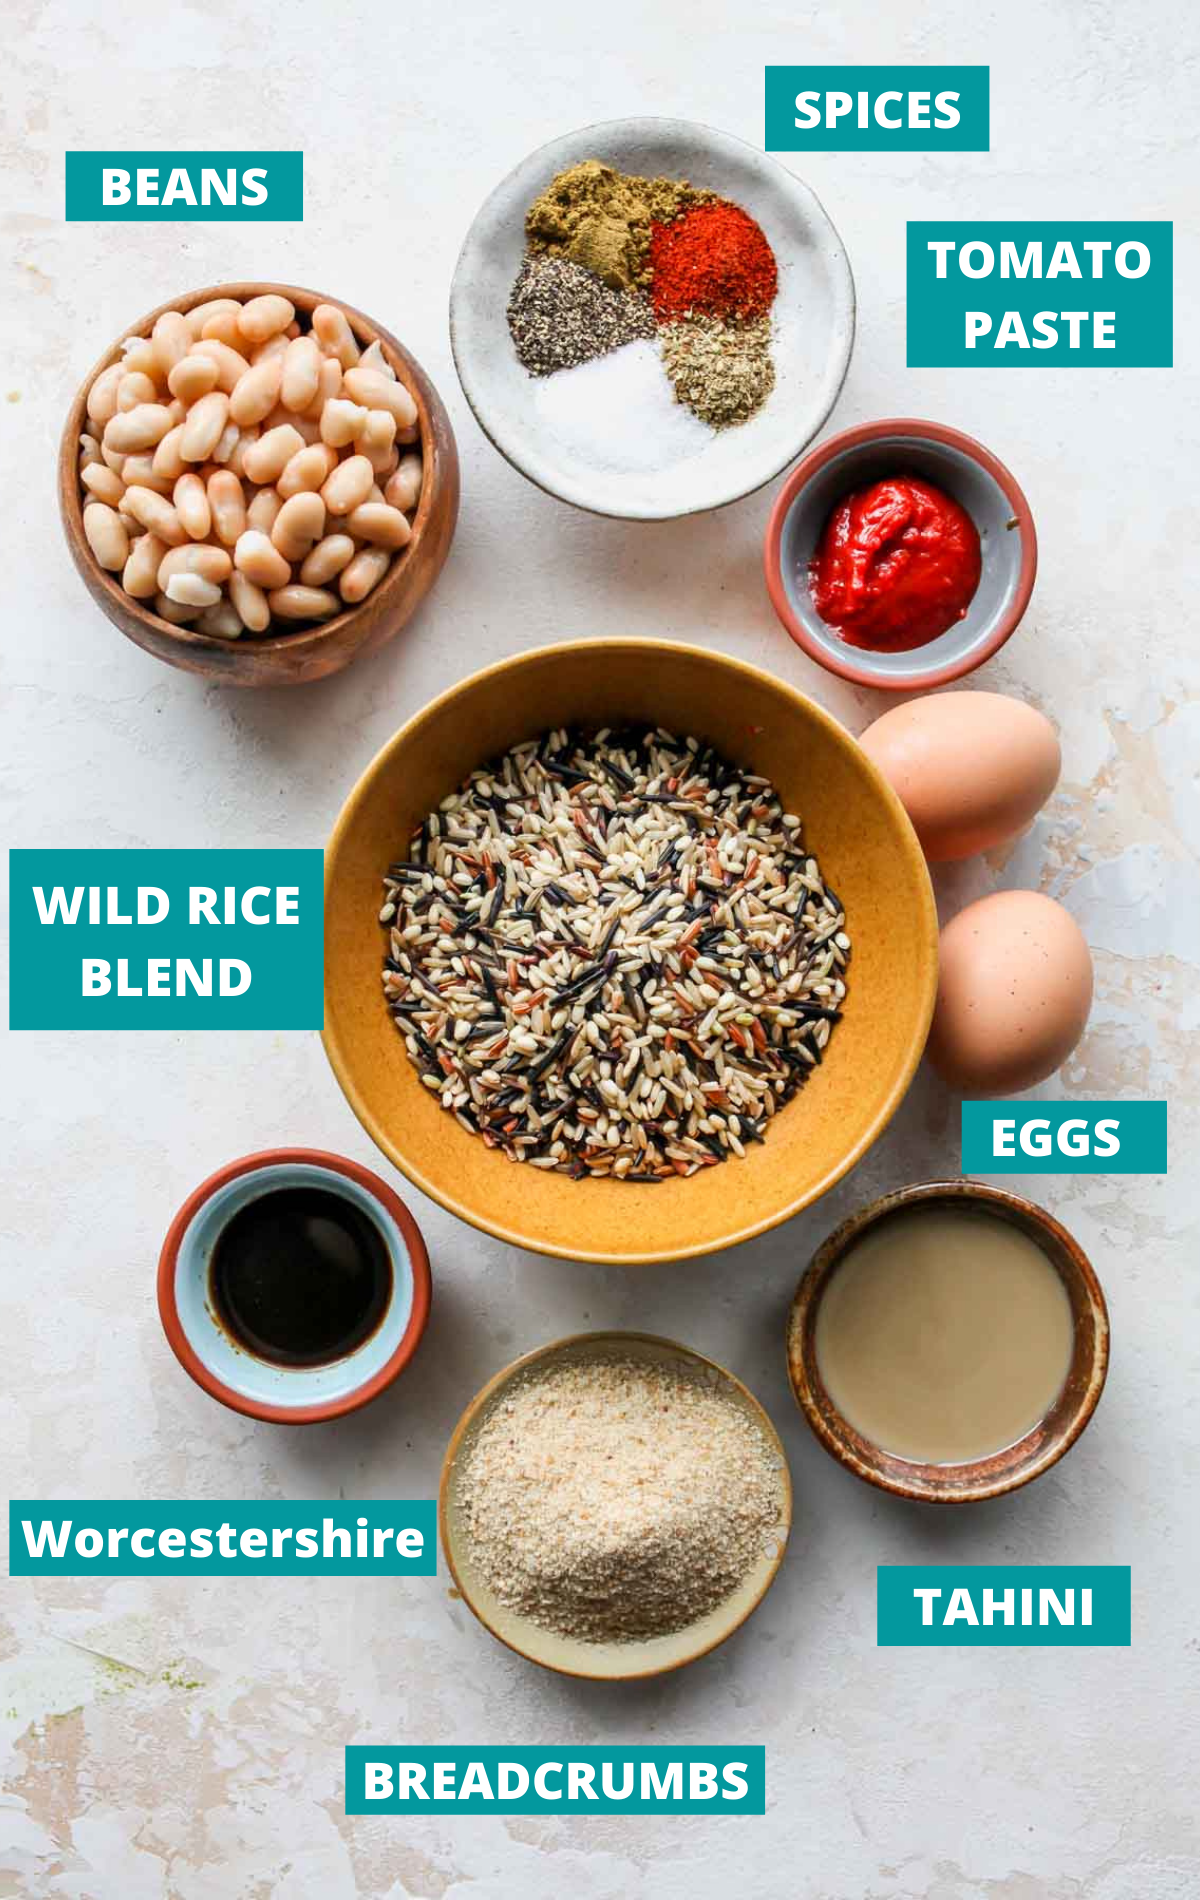 Recipe ingredients in separate bowls with teal labels